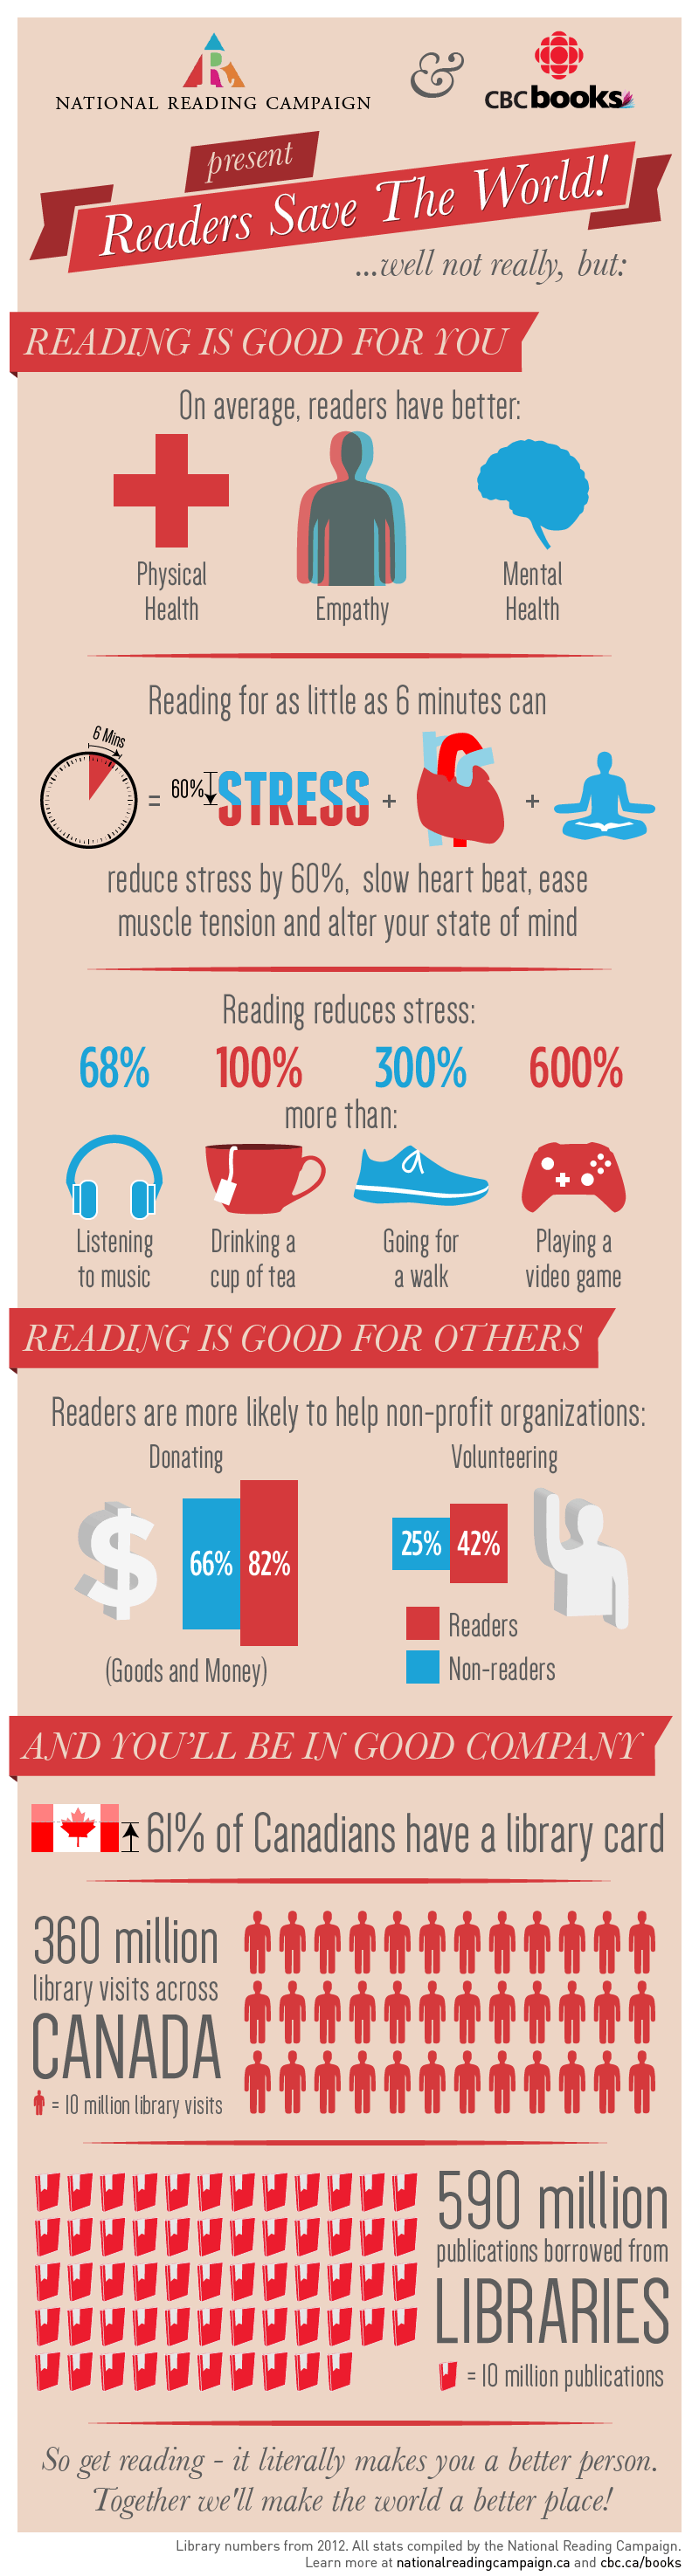 benefits-reading-reduces-stress